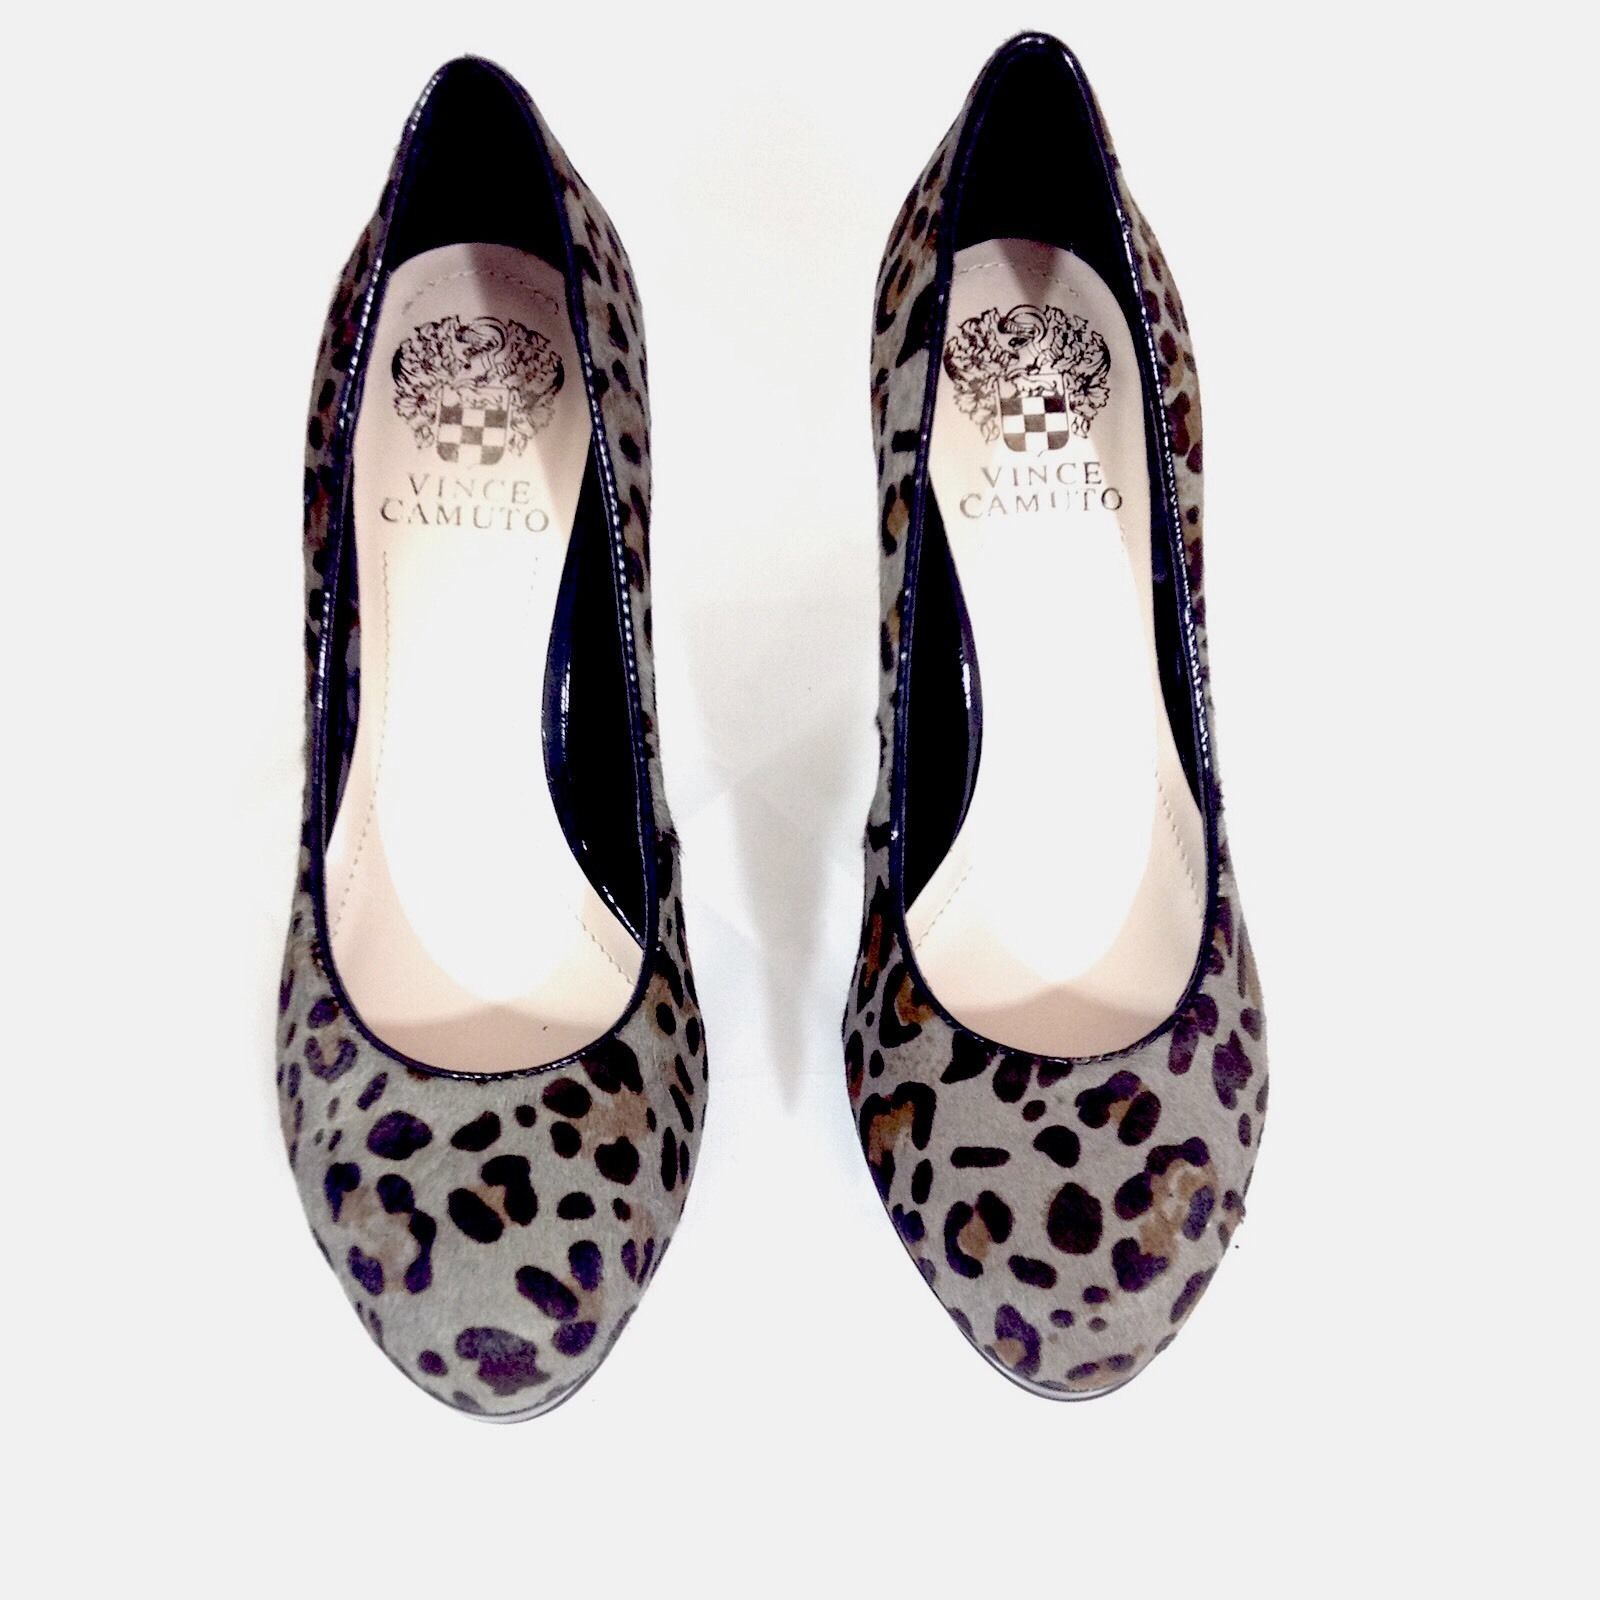 4465fe892b5 NEW Vince Camuto Size 7.5 Calf Hair Leopard Gray Brown Black Leather Pumps  Heels